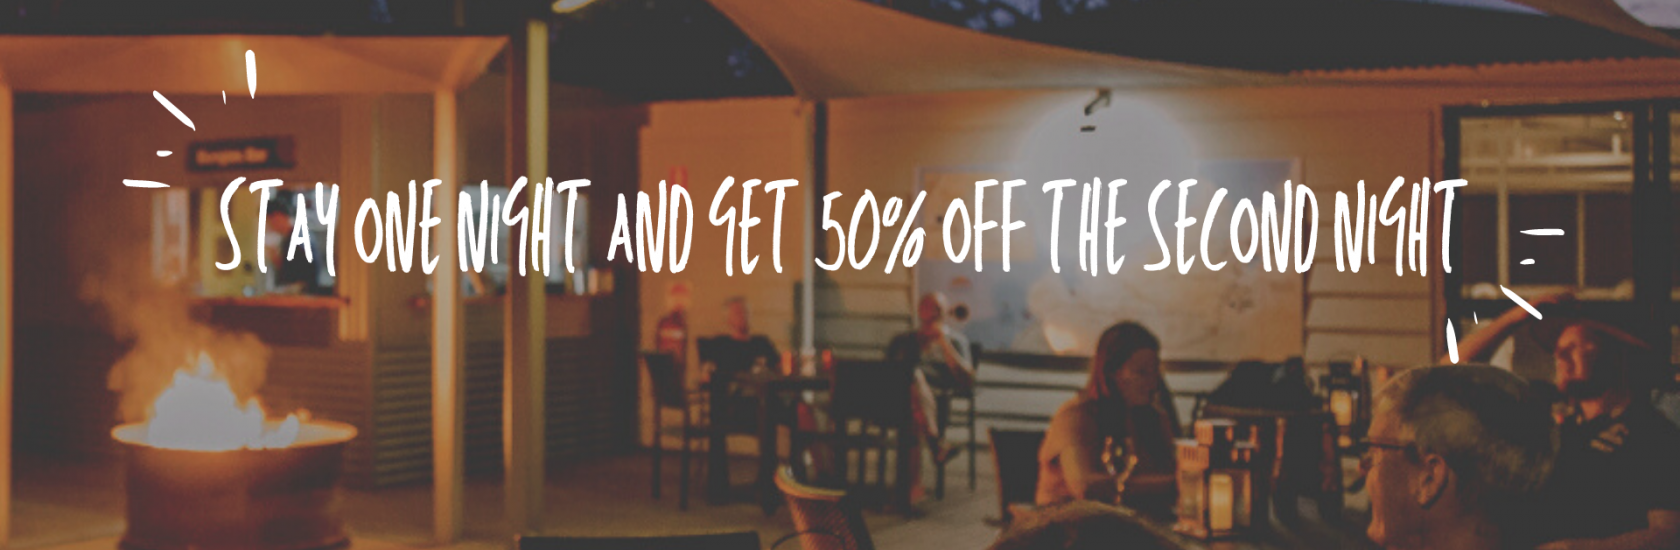 Stay one night and get 50% off your second night